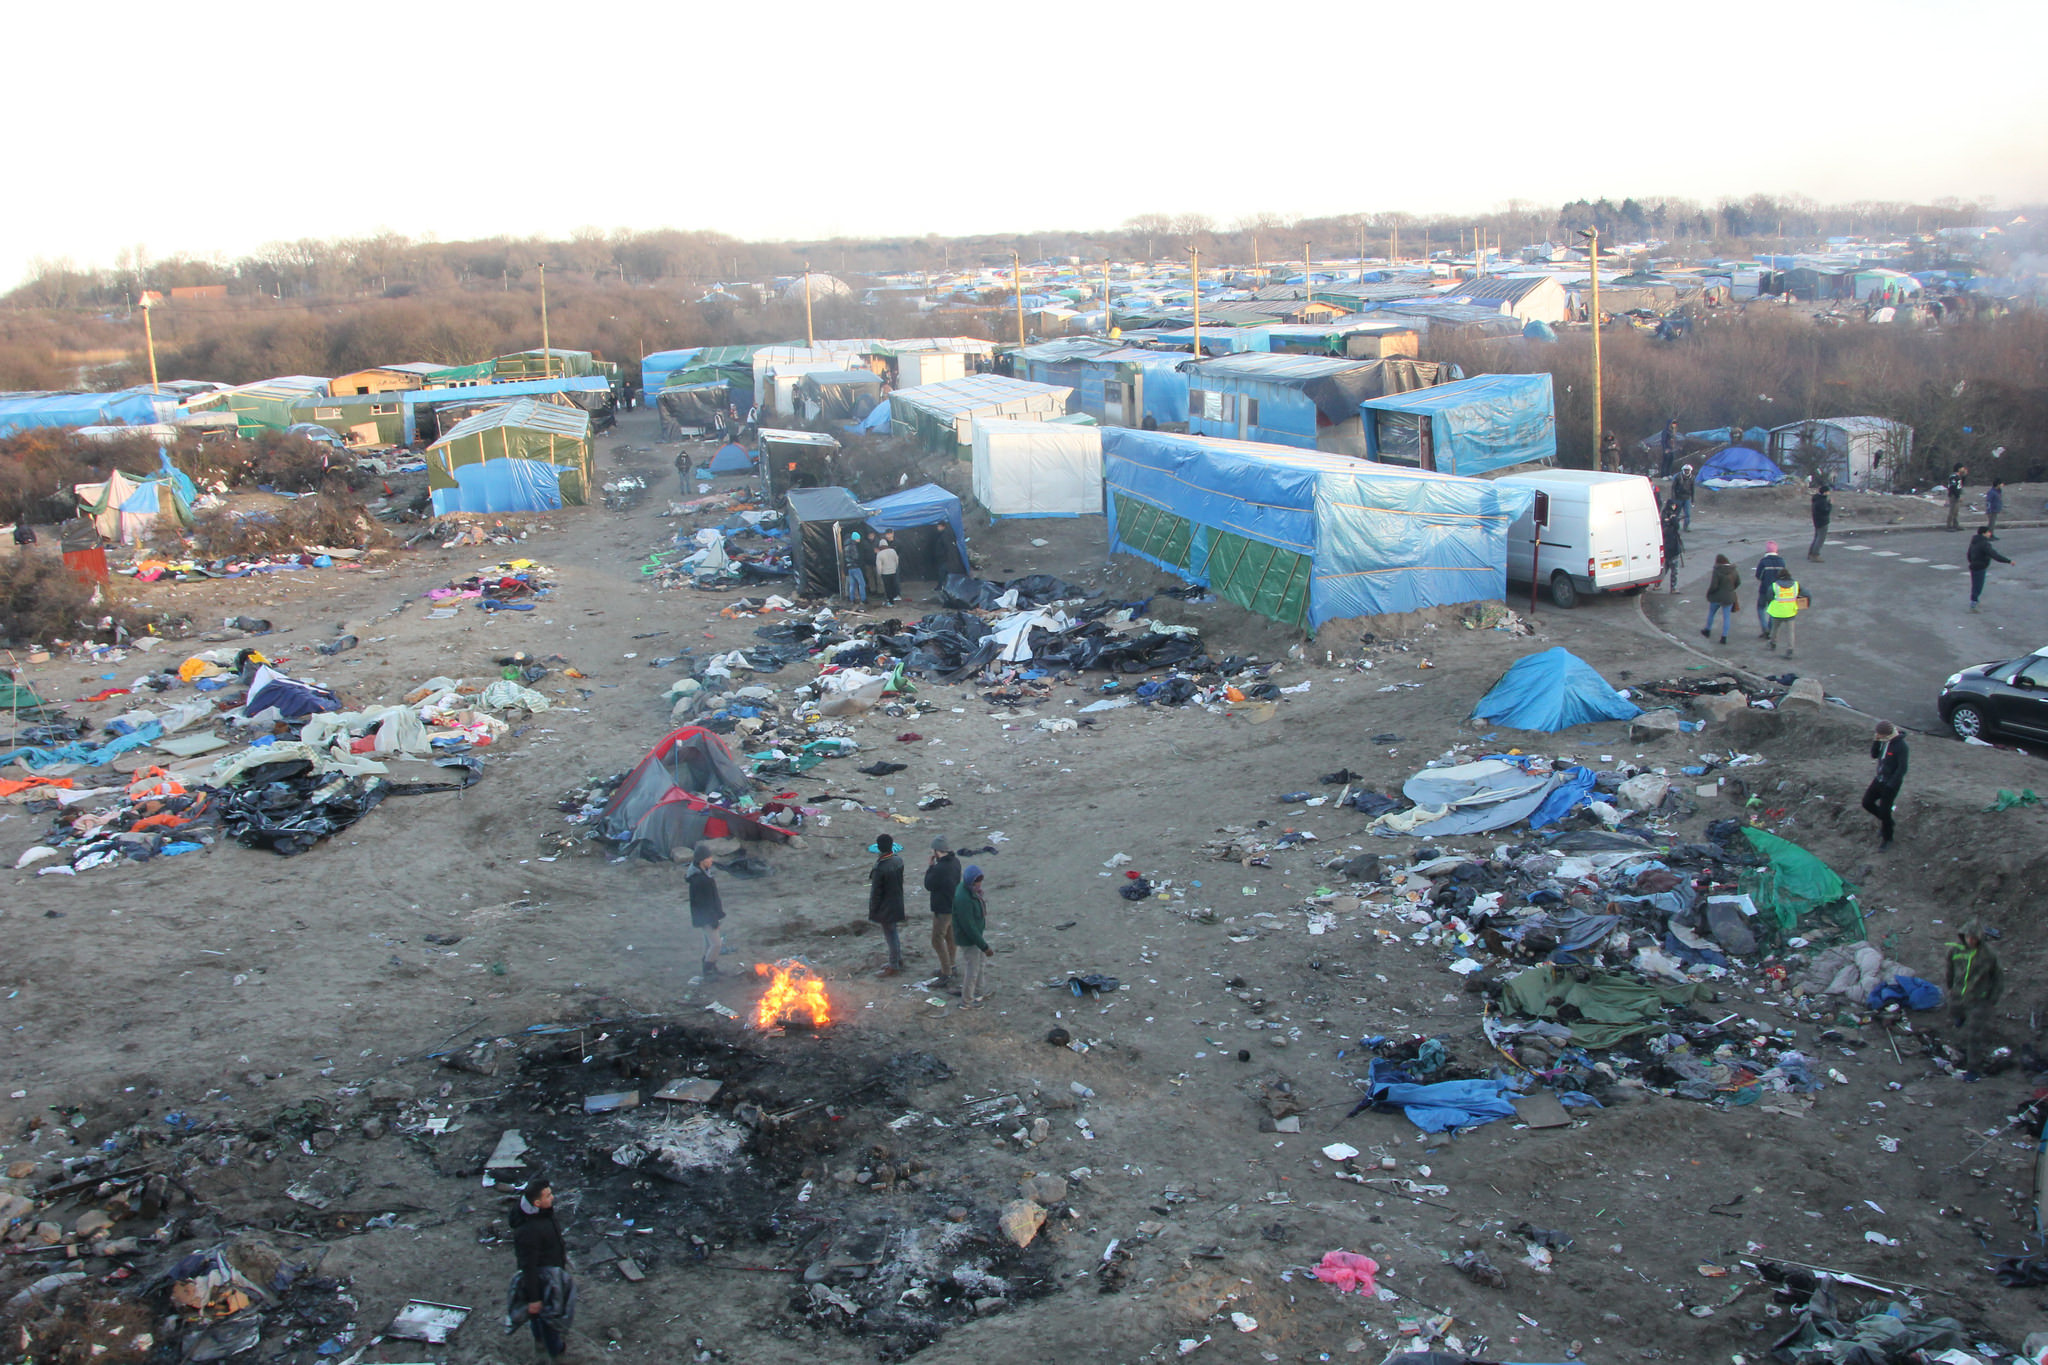 Overview_of_Calais_Jungle.jpg